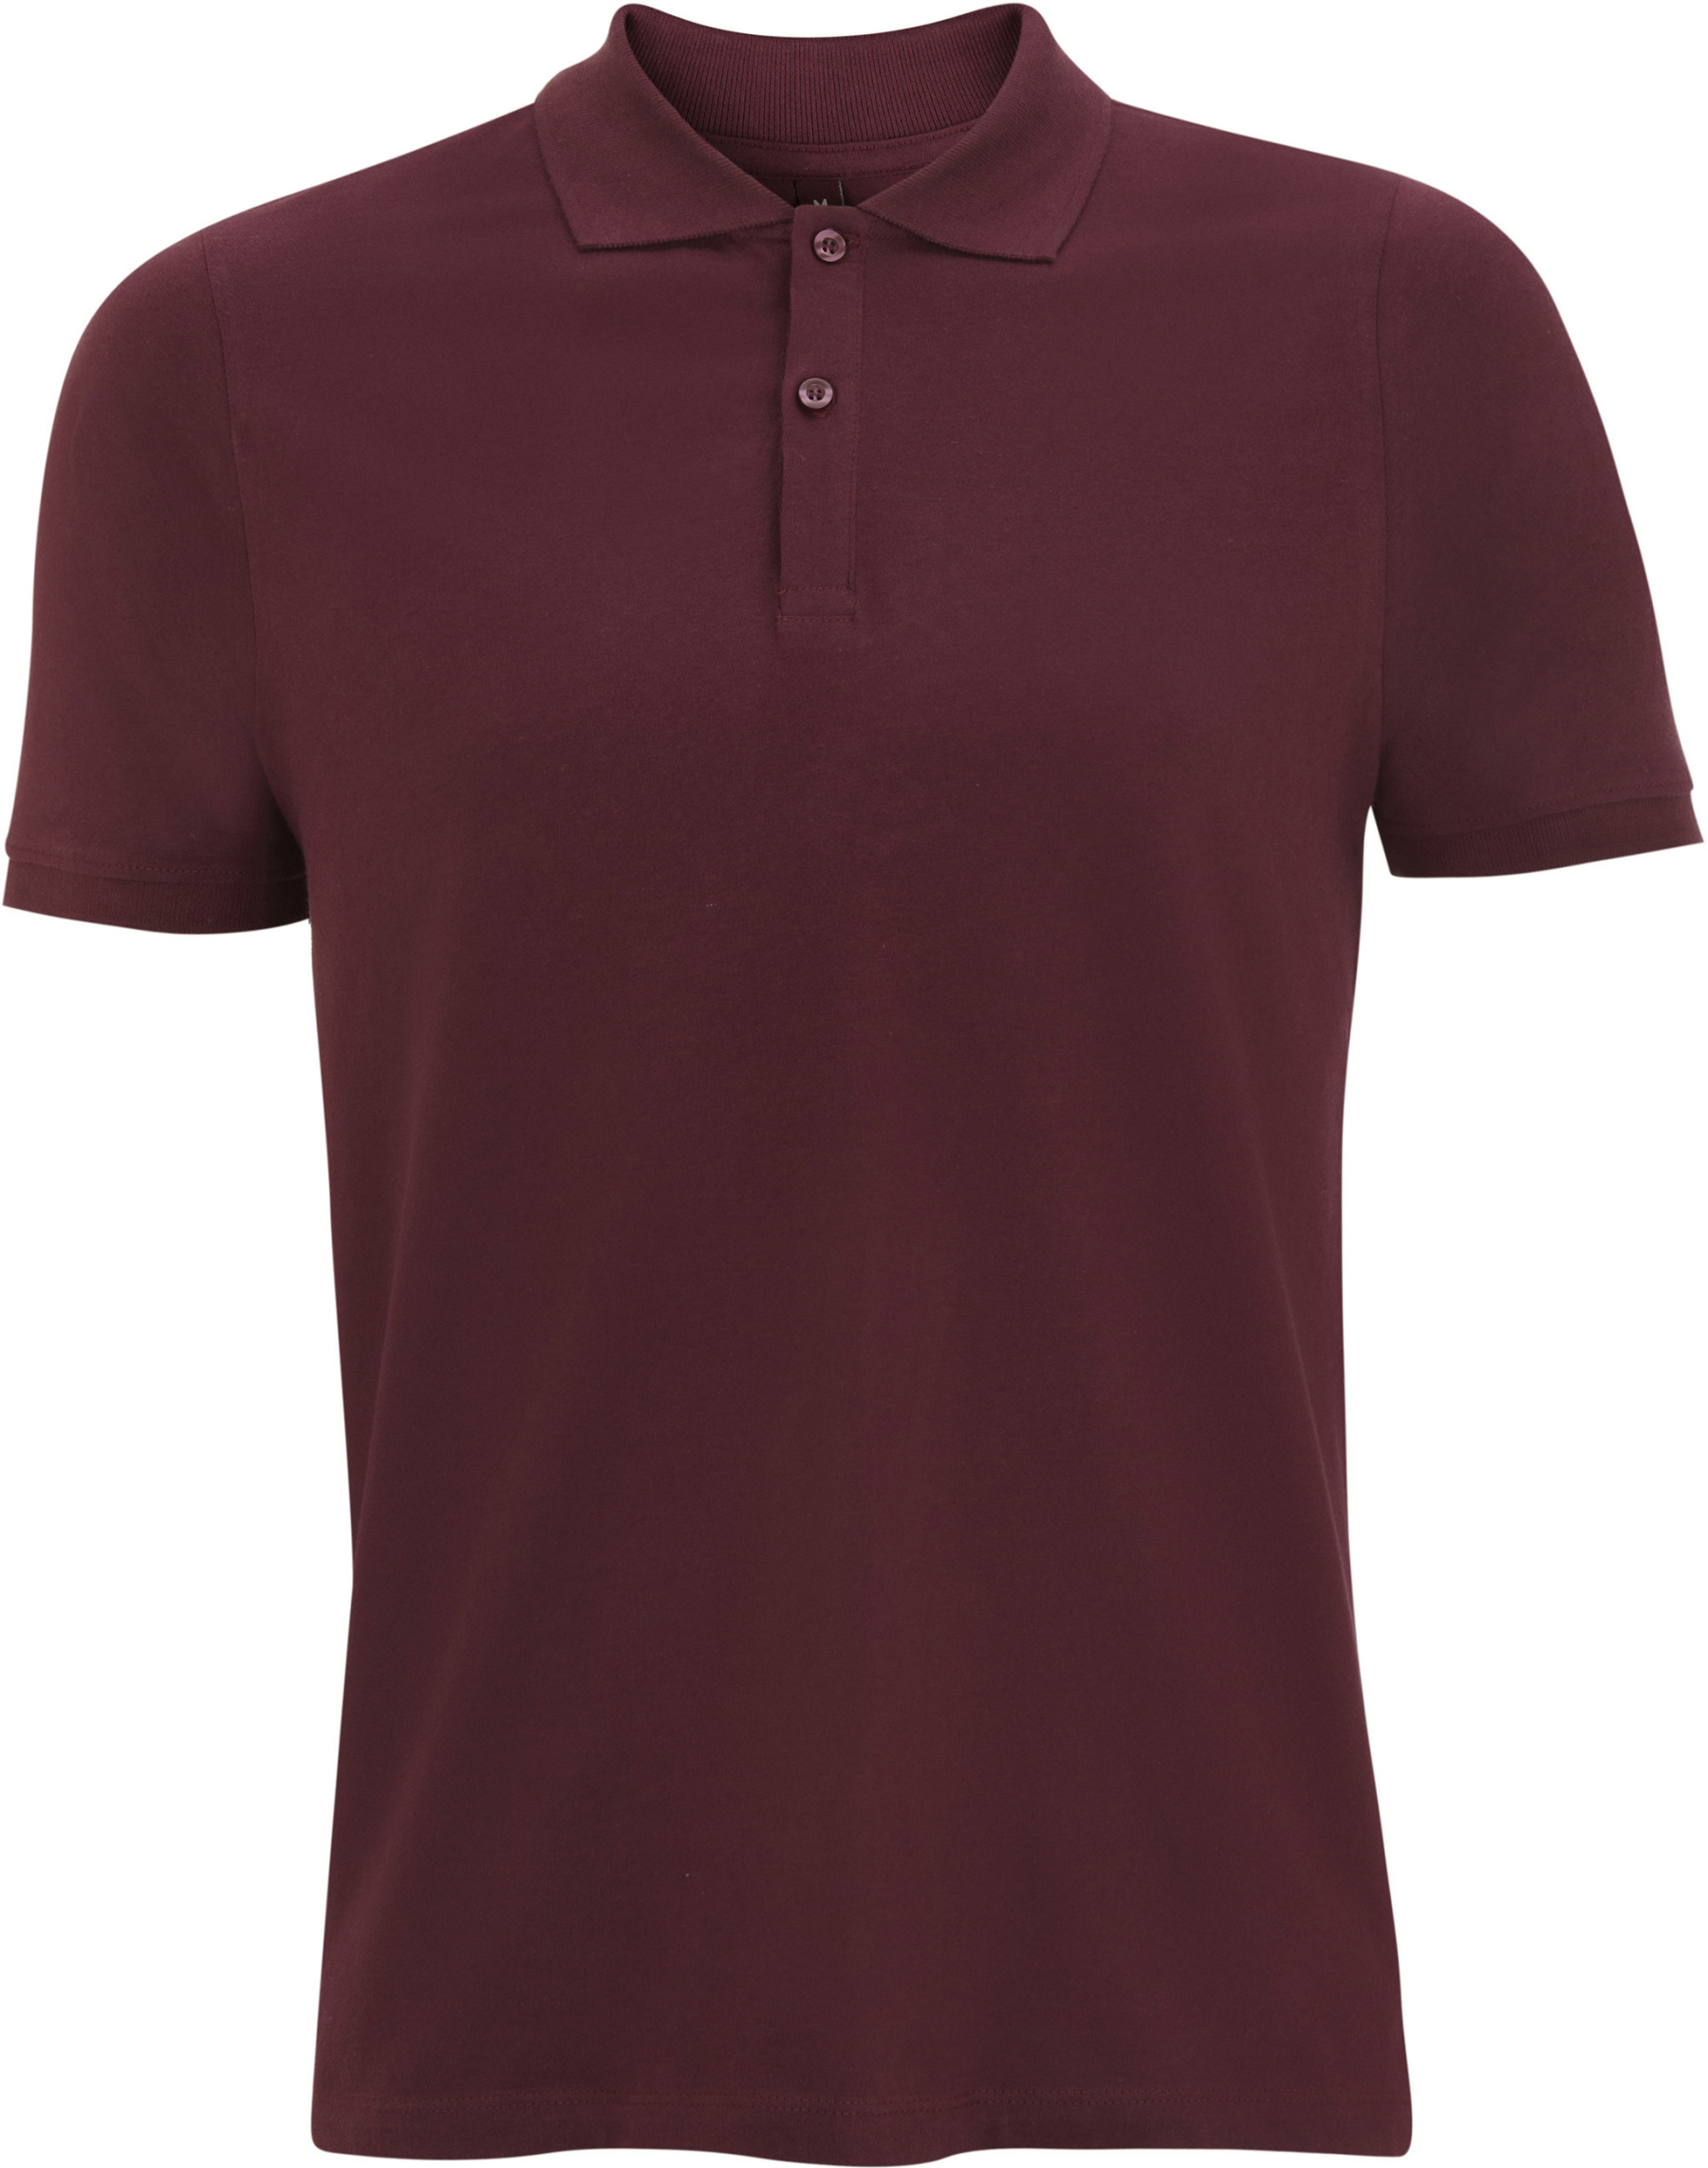 Men's Slim-Fit Jersey Polo